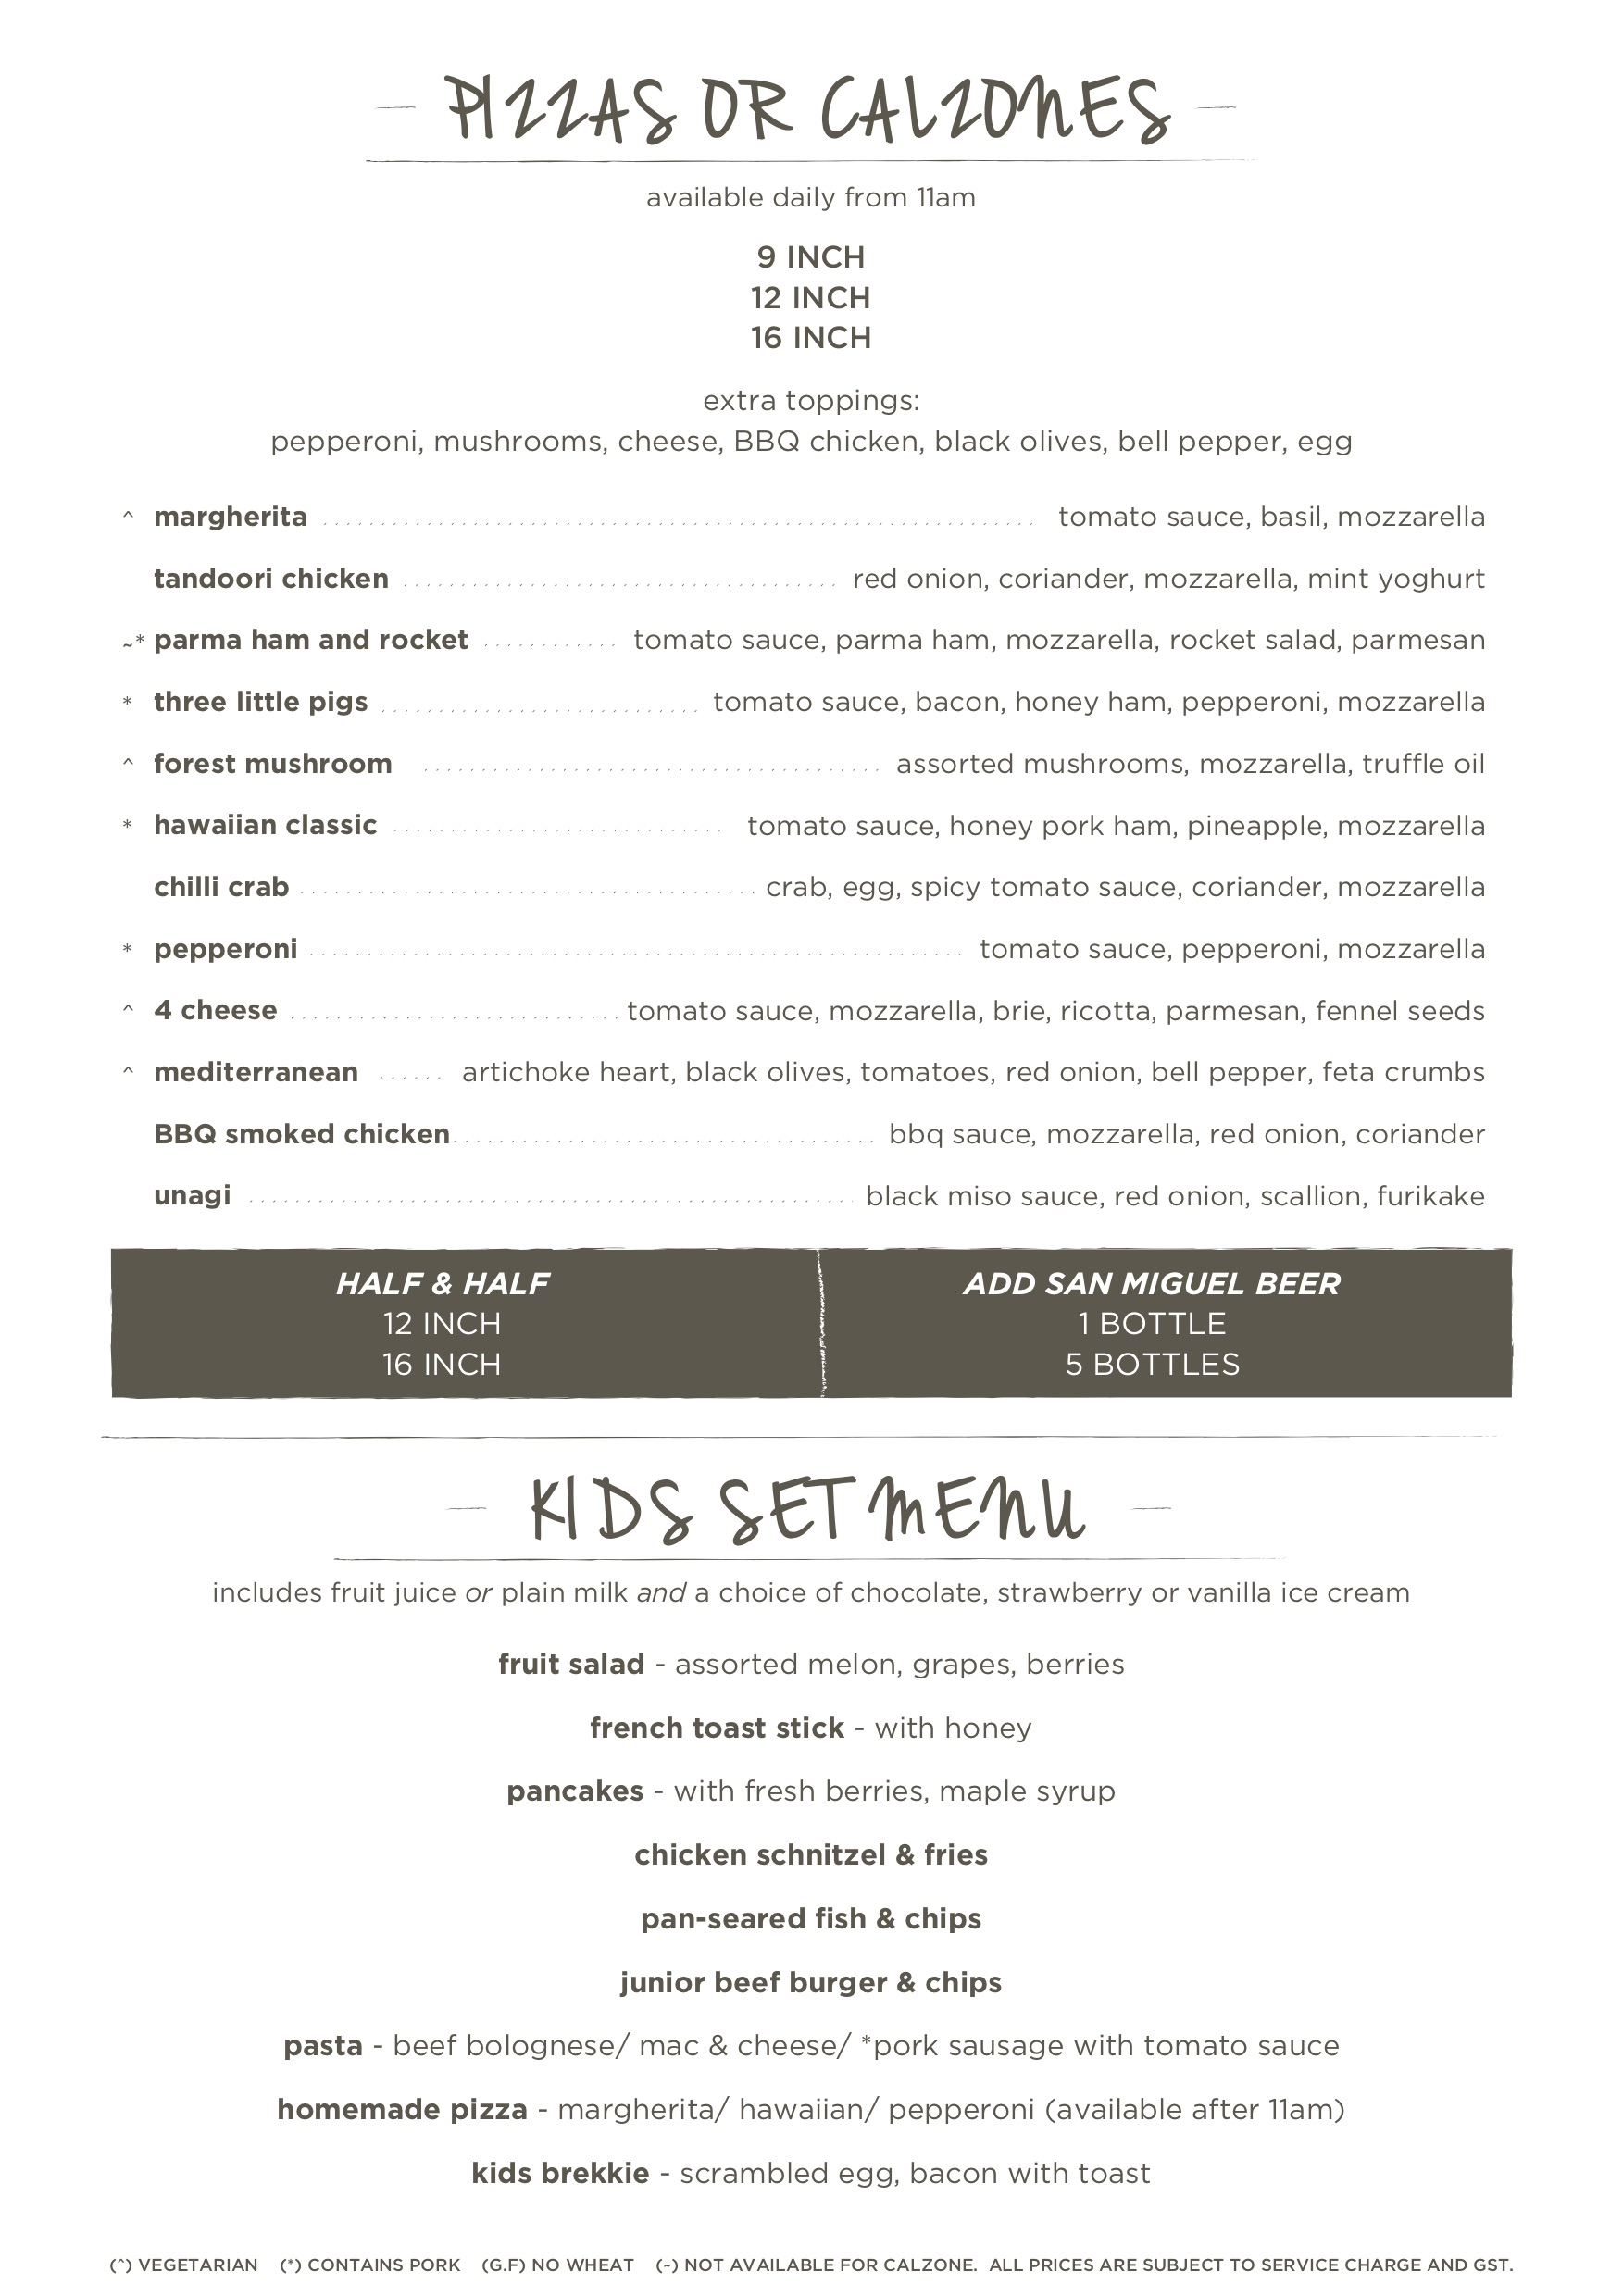 Cafe Melba @ Mediapolis - Menu Pg2 - TREAT